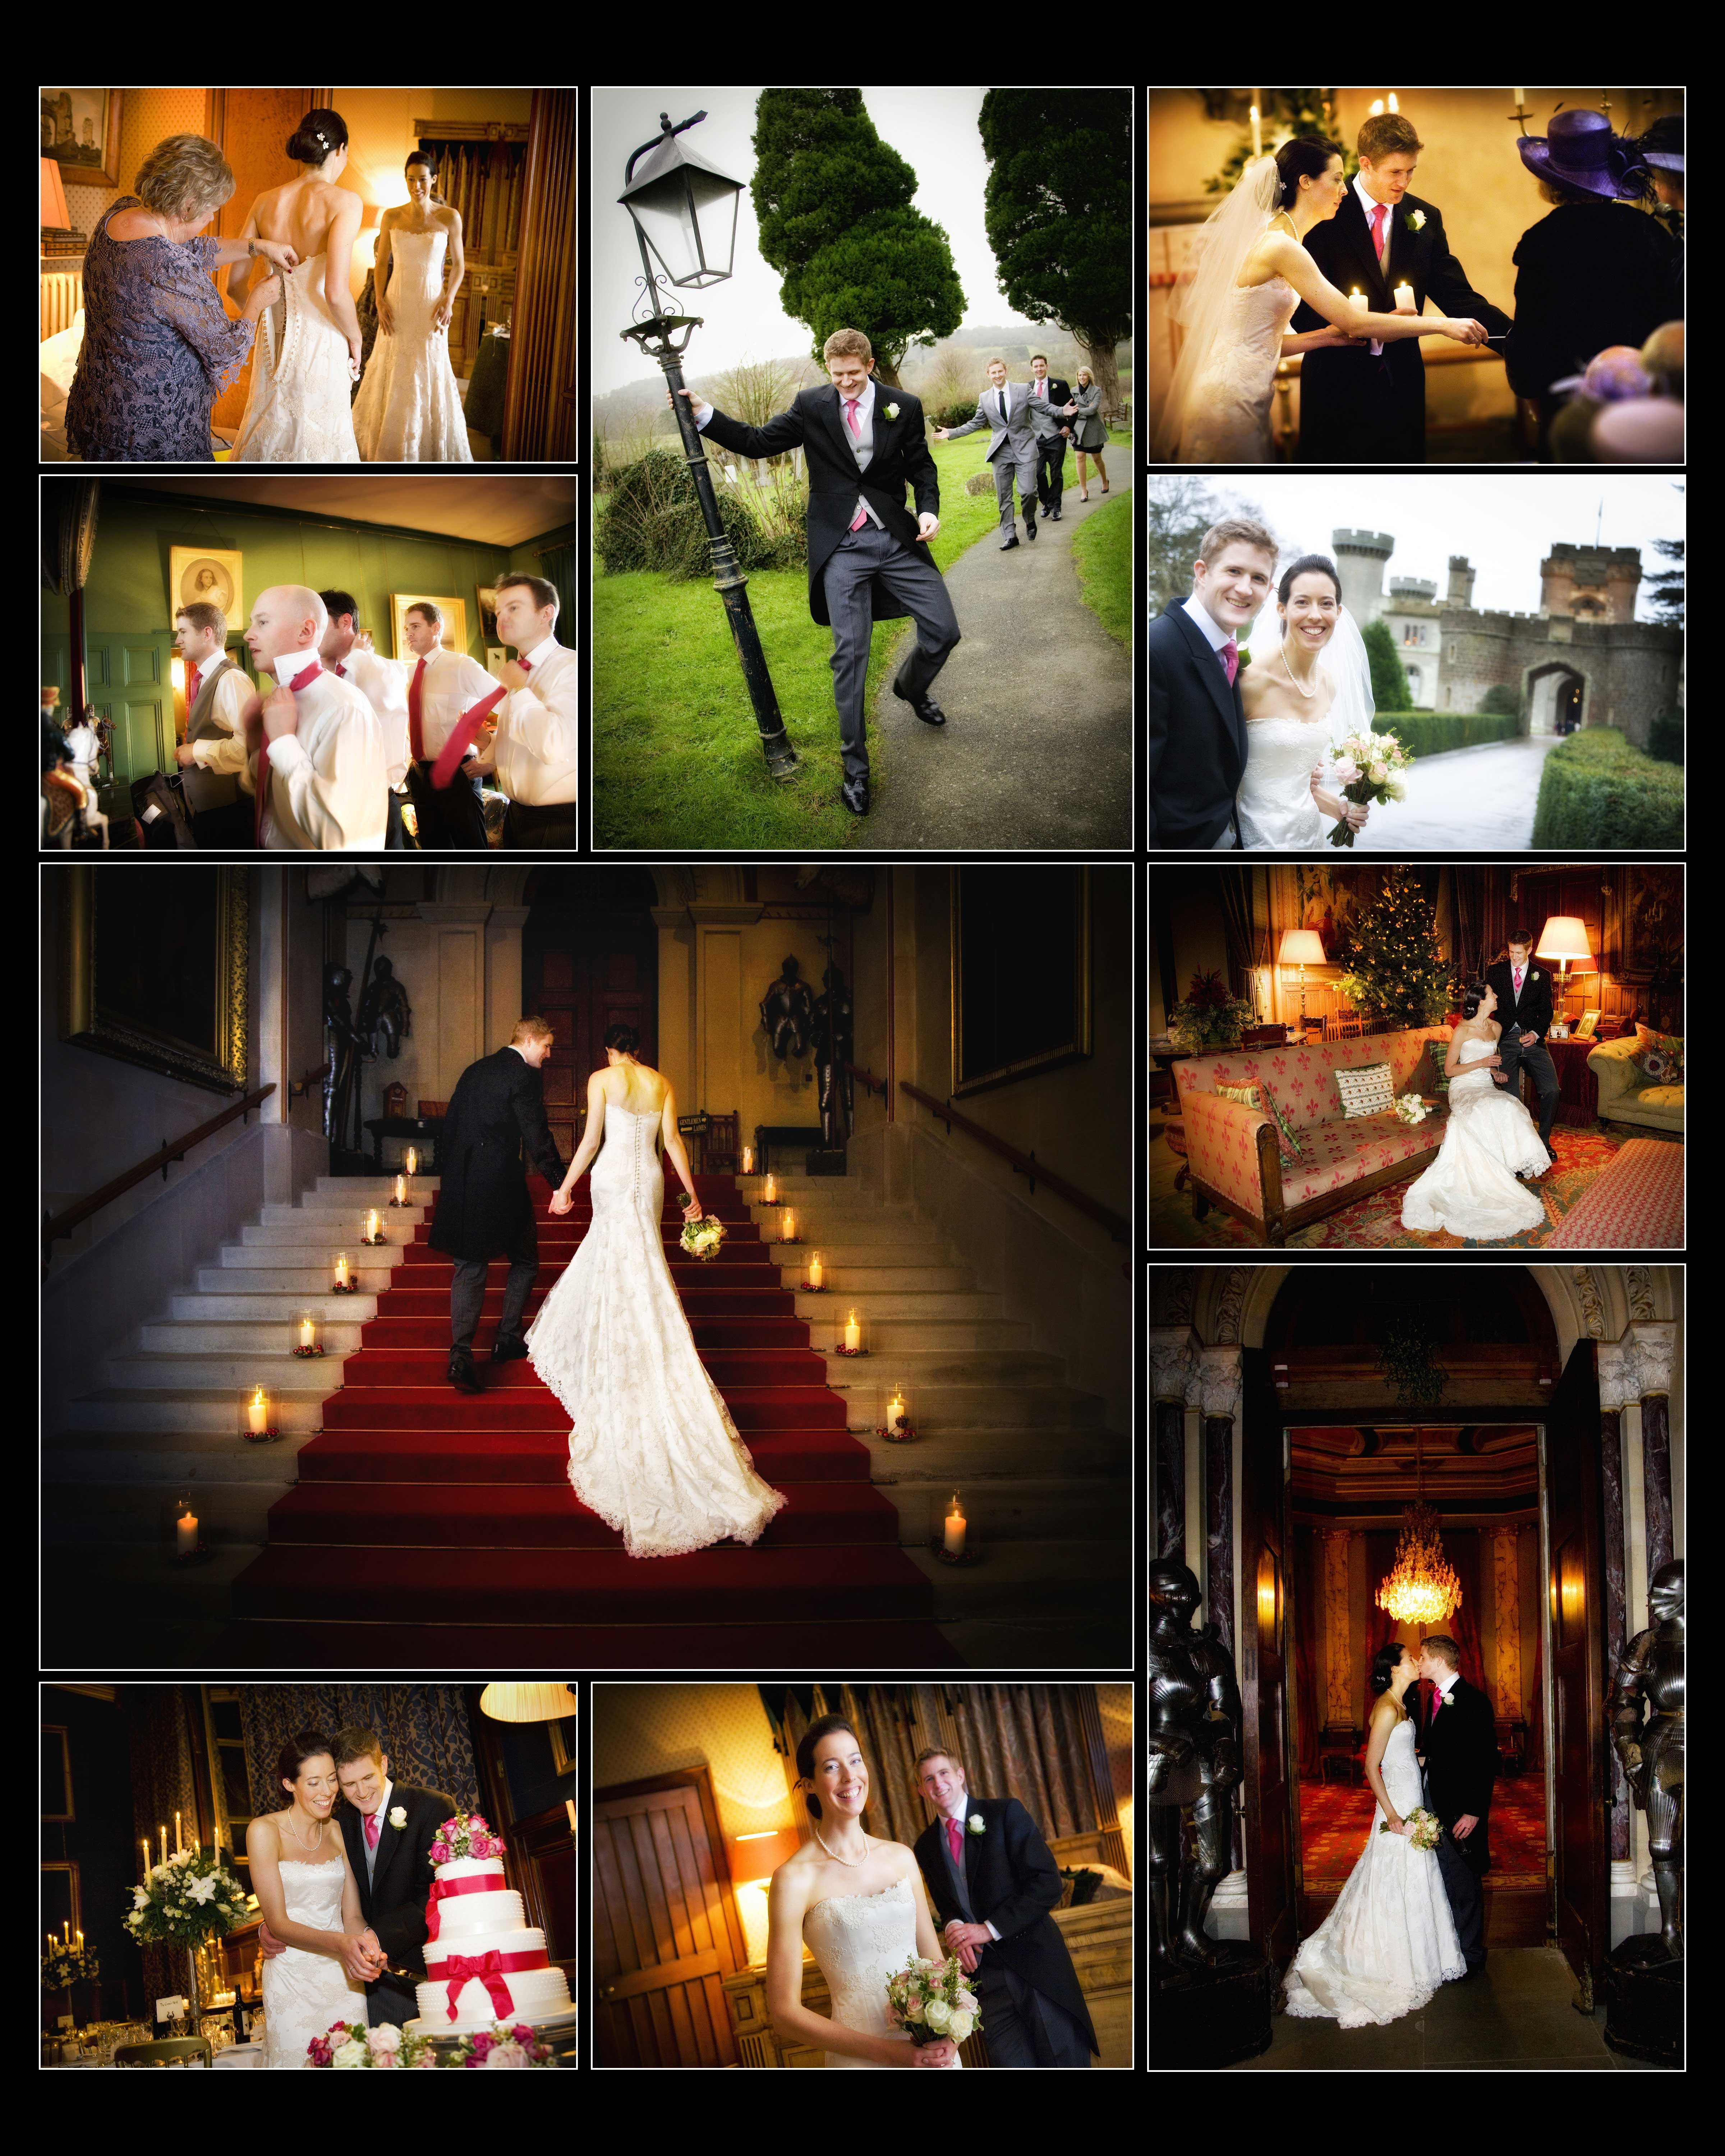 A Christmas winter wedding at Eastnor Castle www ...